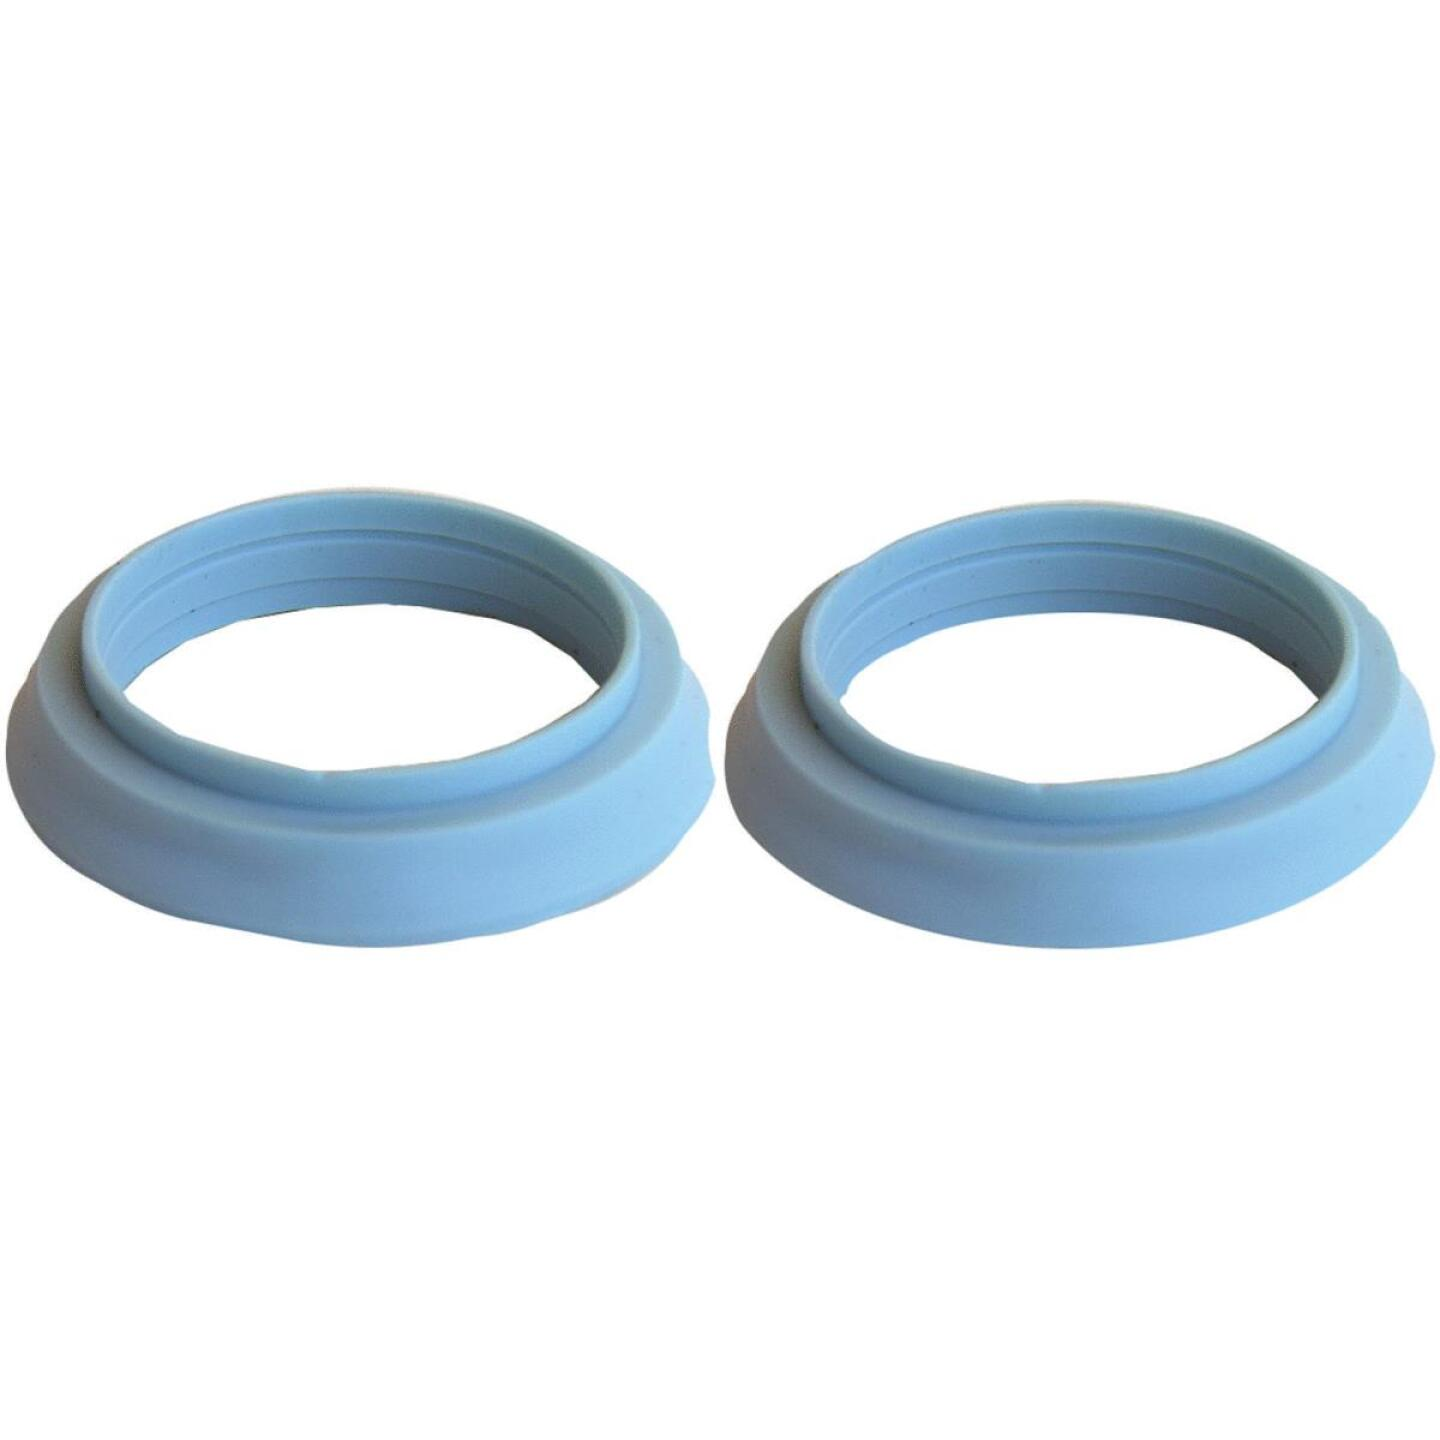 Lasco 1-1/2 In. x 1-1/4 In. Blue Vinyl Slip Joint Washer (2 Pack) Image 1